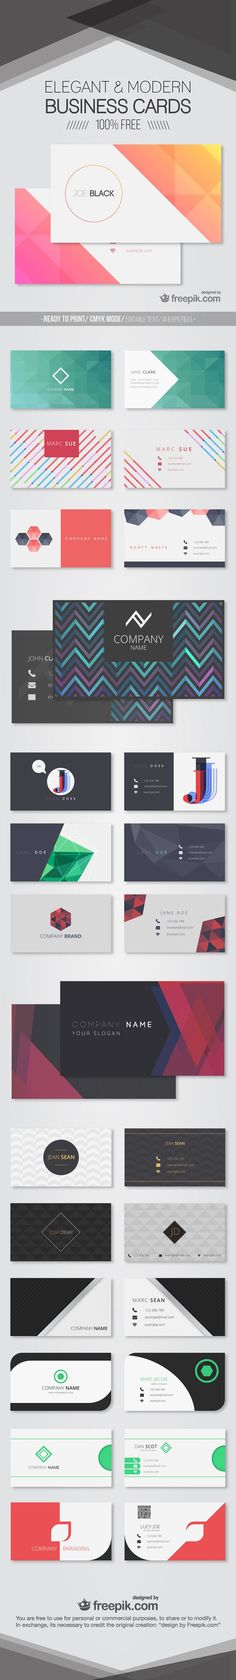 Super modern business card designs